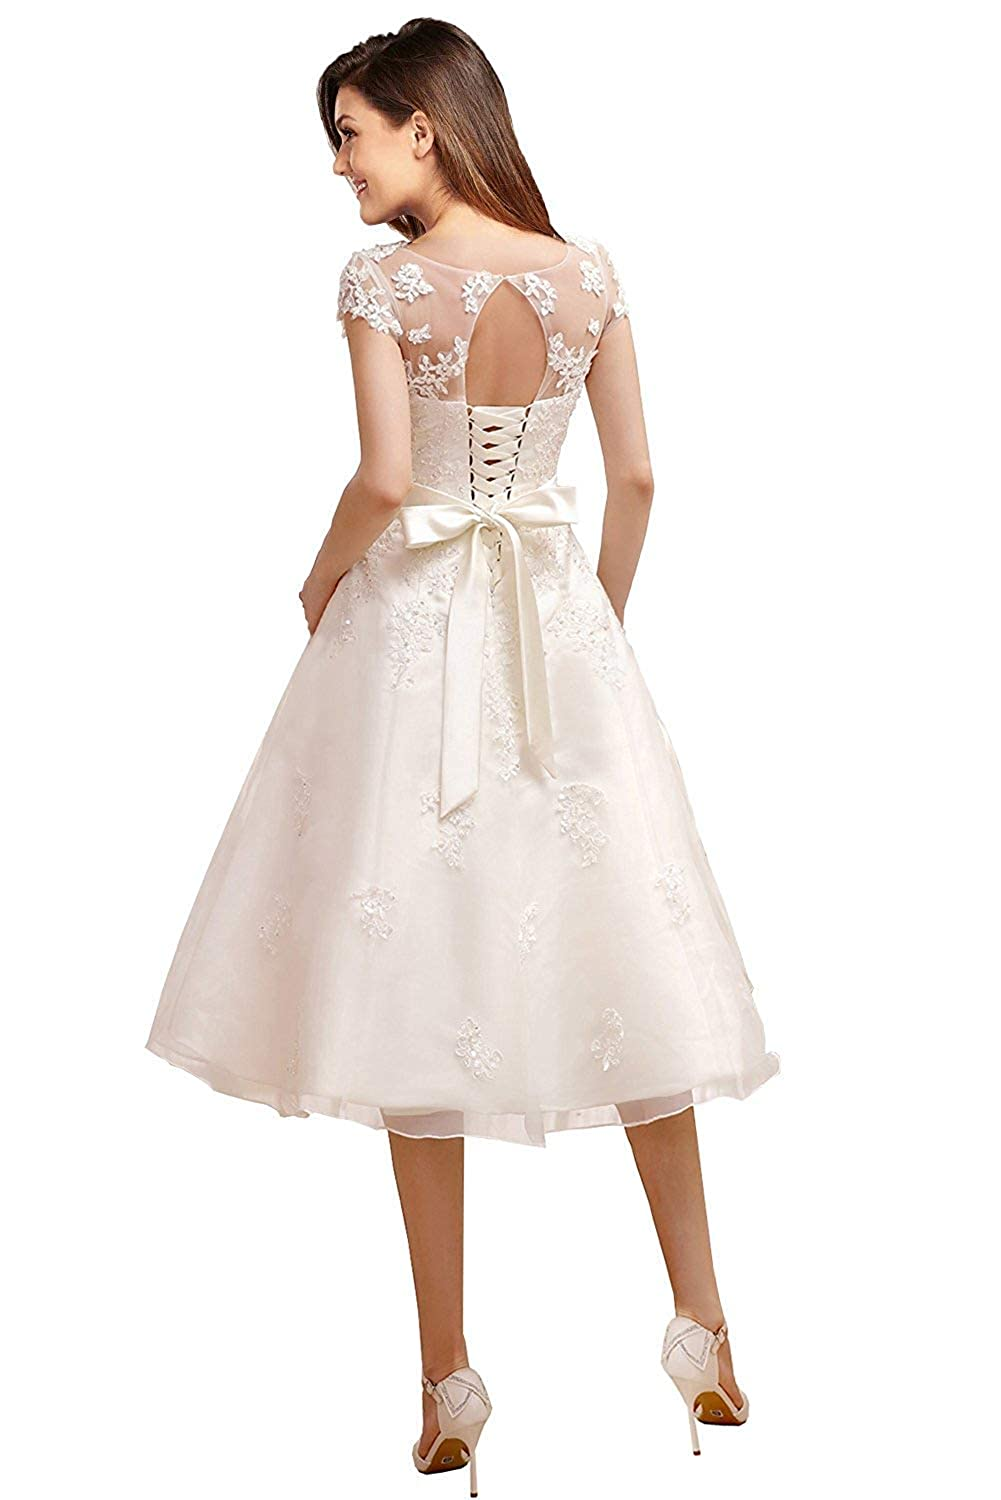 Xkyu Womens Lace Cap Sleeves Wedding Dress Evening Gown Tea Length